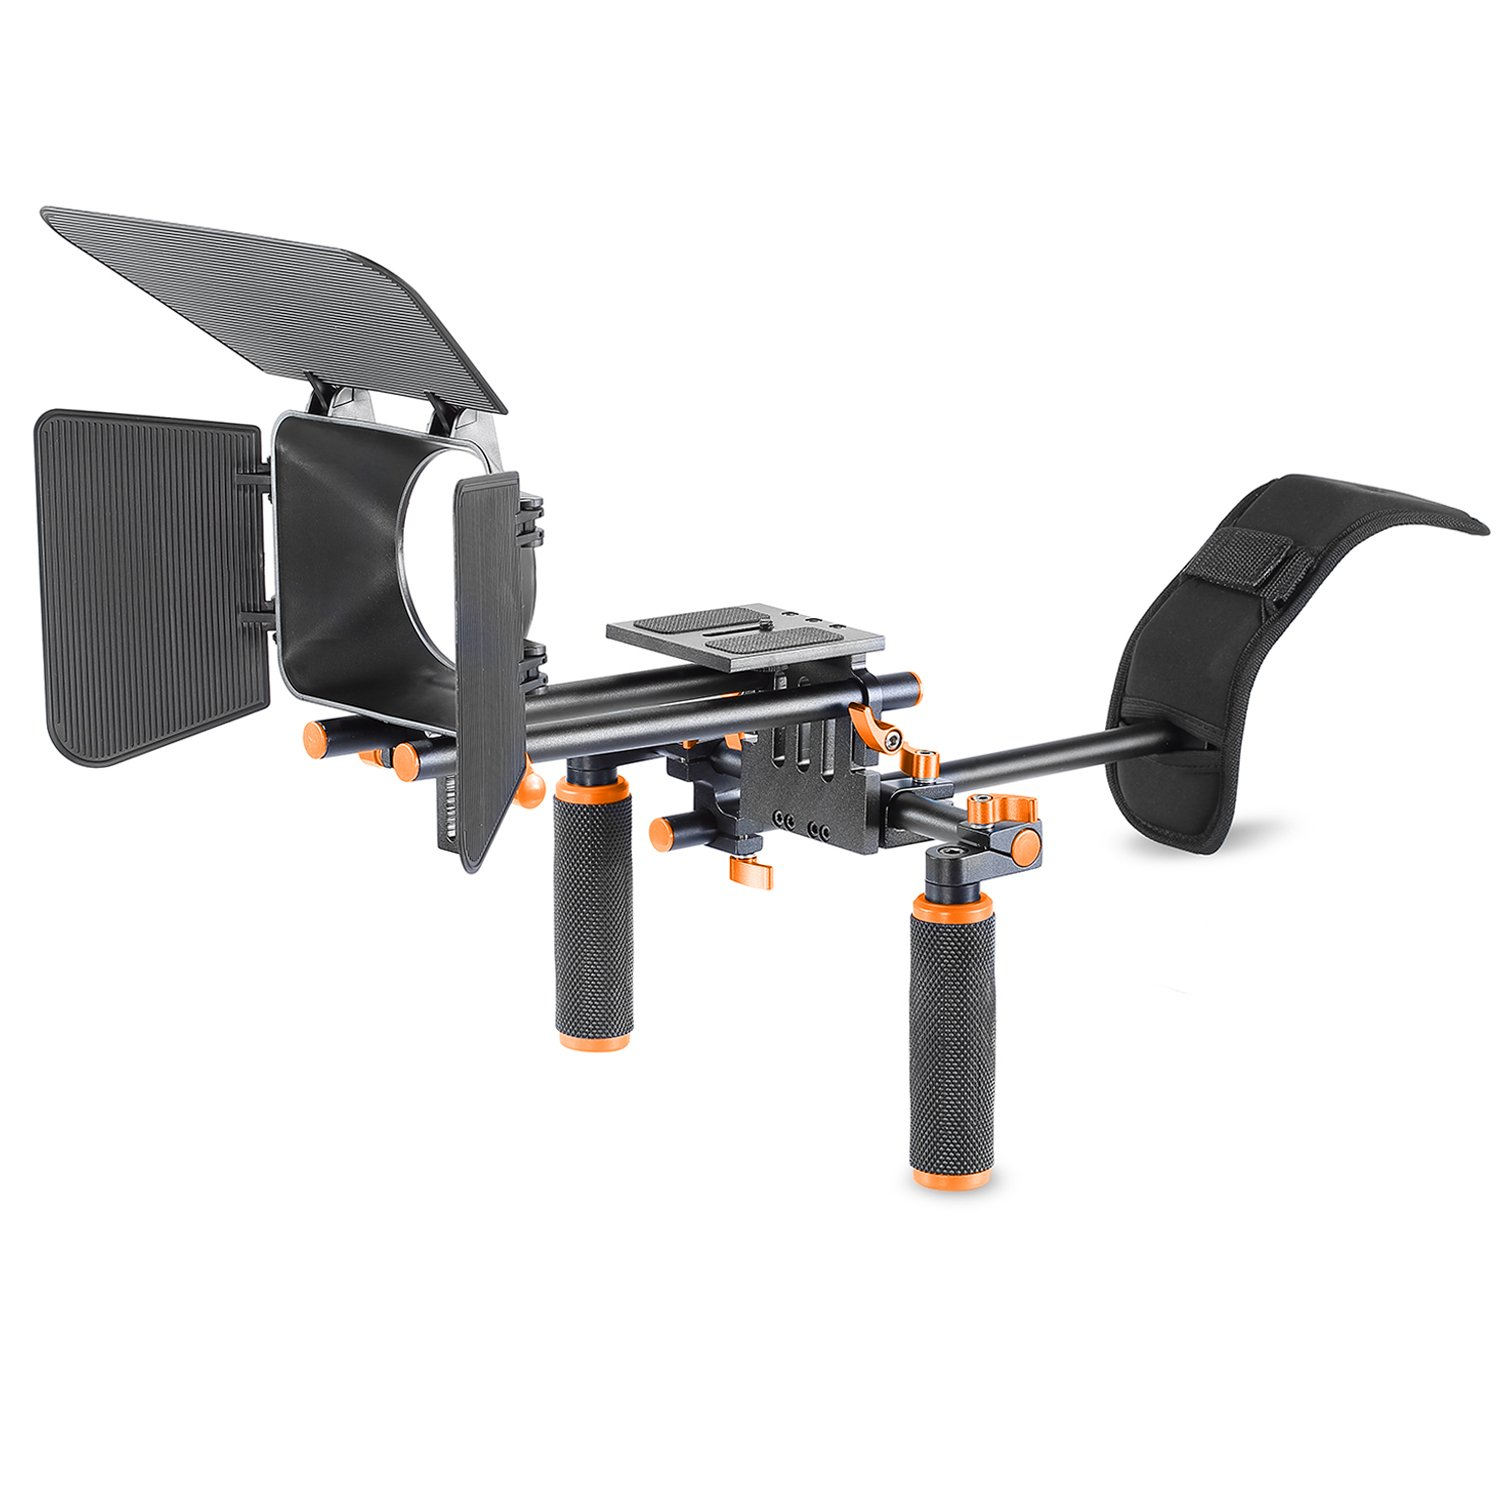 Neewer Camera Movie Video Making Rig System Film-Maker Kit for Canon Nikon Sony and Other DSLR Cameras,DV Camcorders,Includes: Shoulder Mount,Standard 15mm Rail Rod System,Matte Box (Orange and Black)